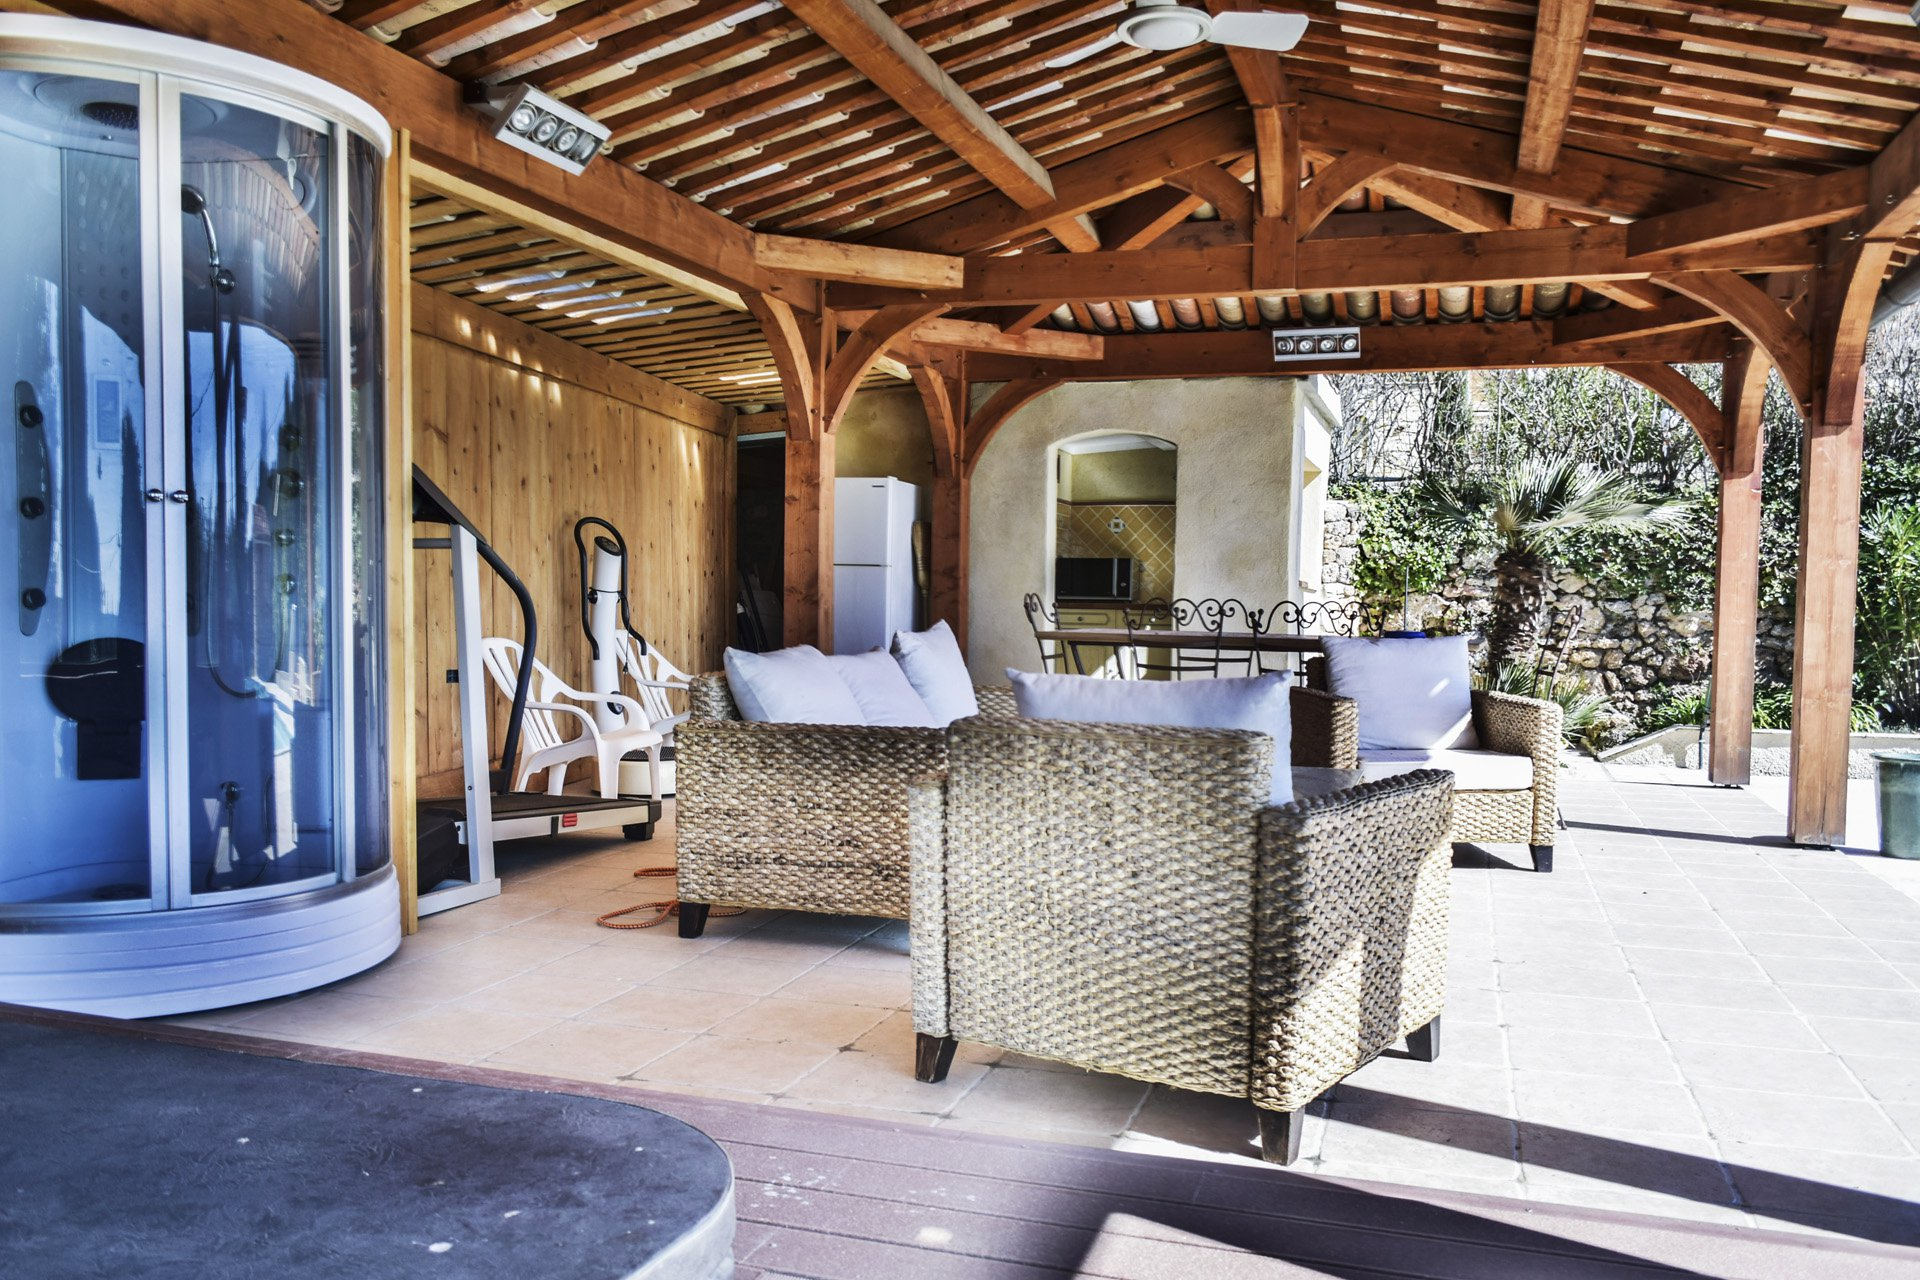 Pool house with Jacuzzi, double shower, kitchenette, 19th century master house renovated with internal lift, Aups, Var, Verdon, Provence